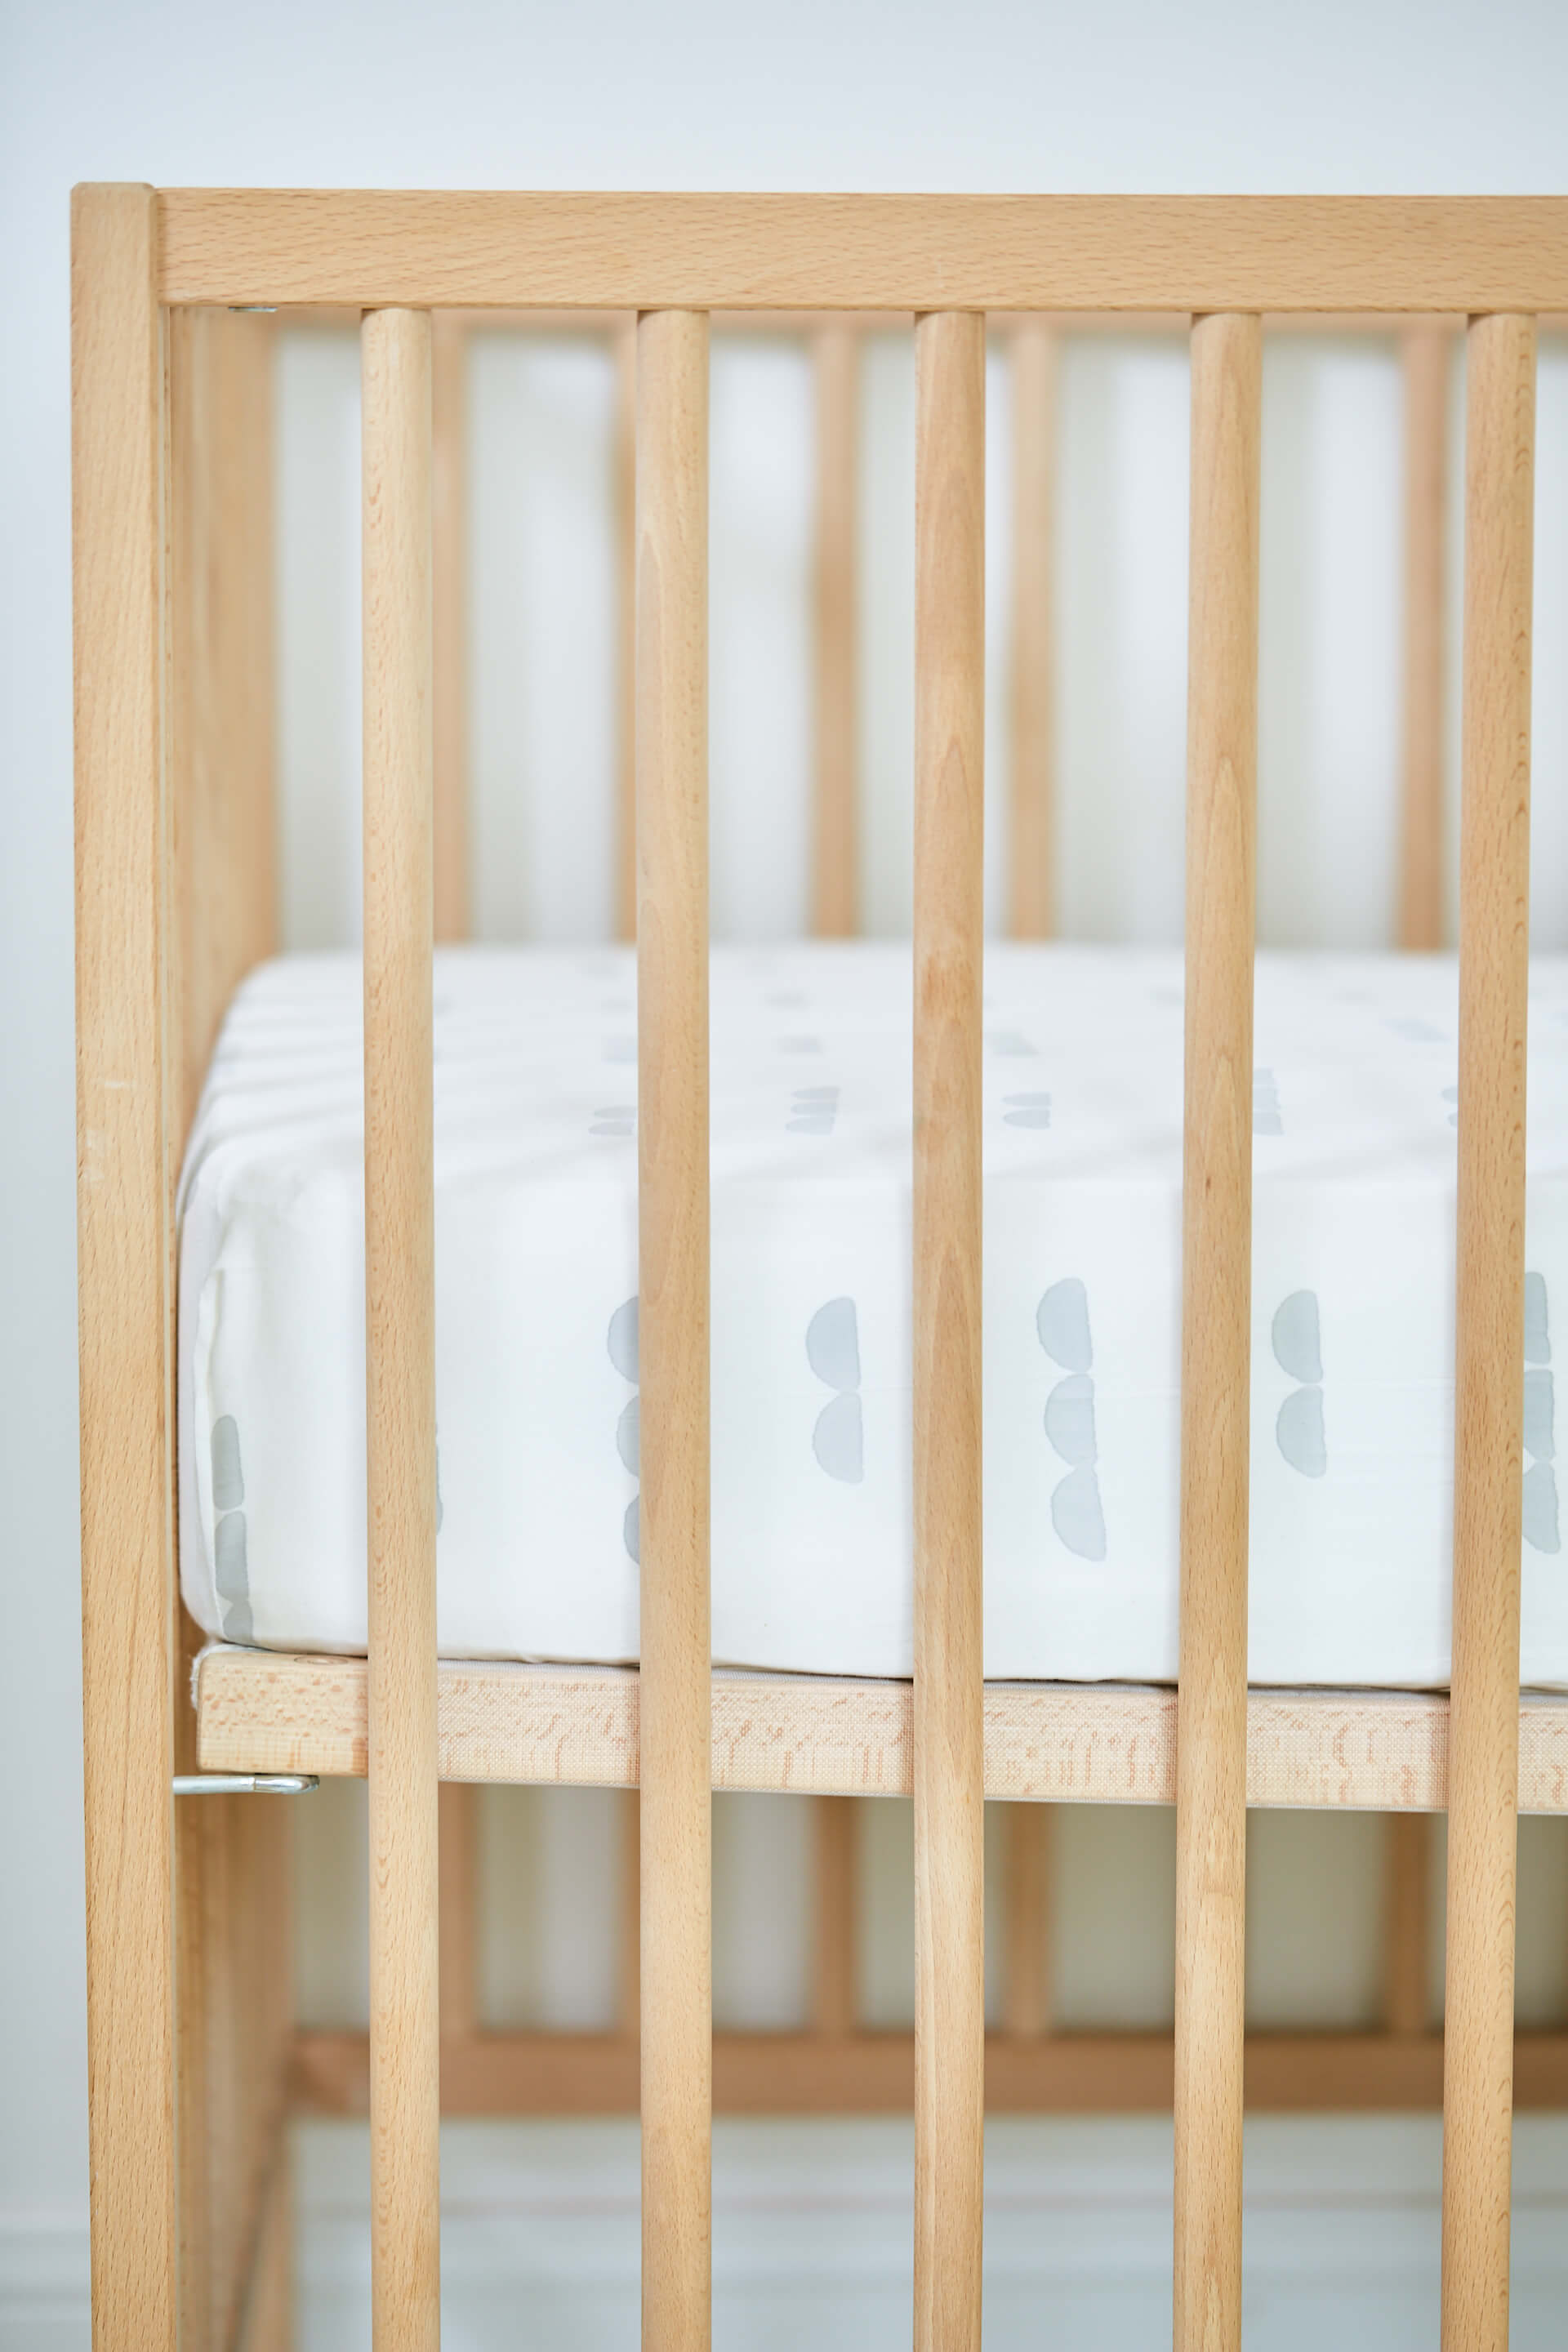 Kindred Kid & Baby Organic Cotton Abacus Crib Sheet Jungle Pillows